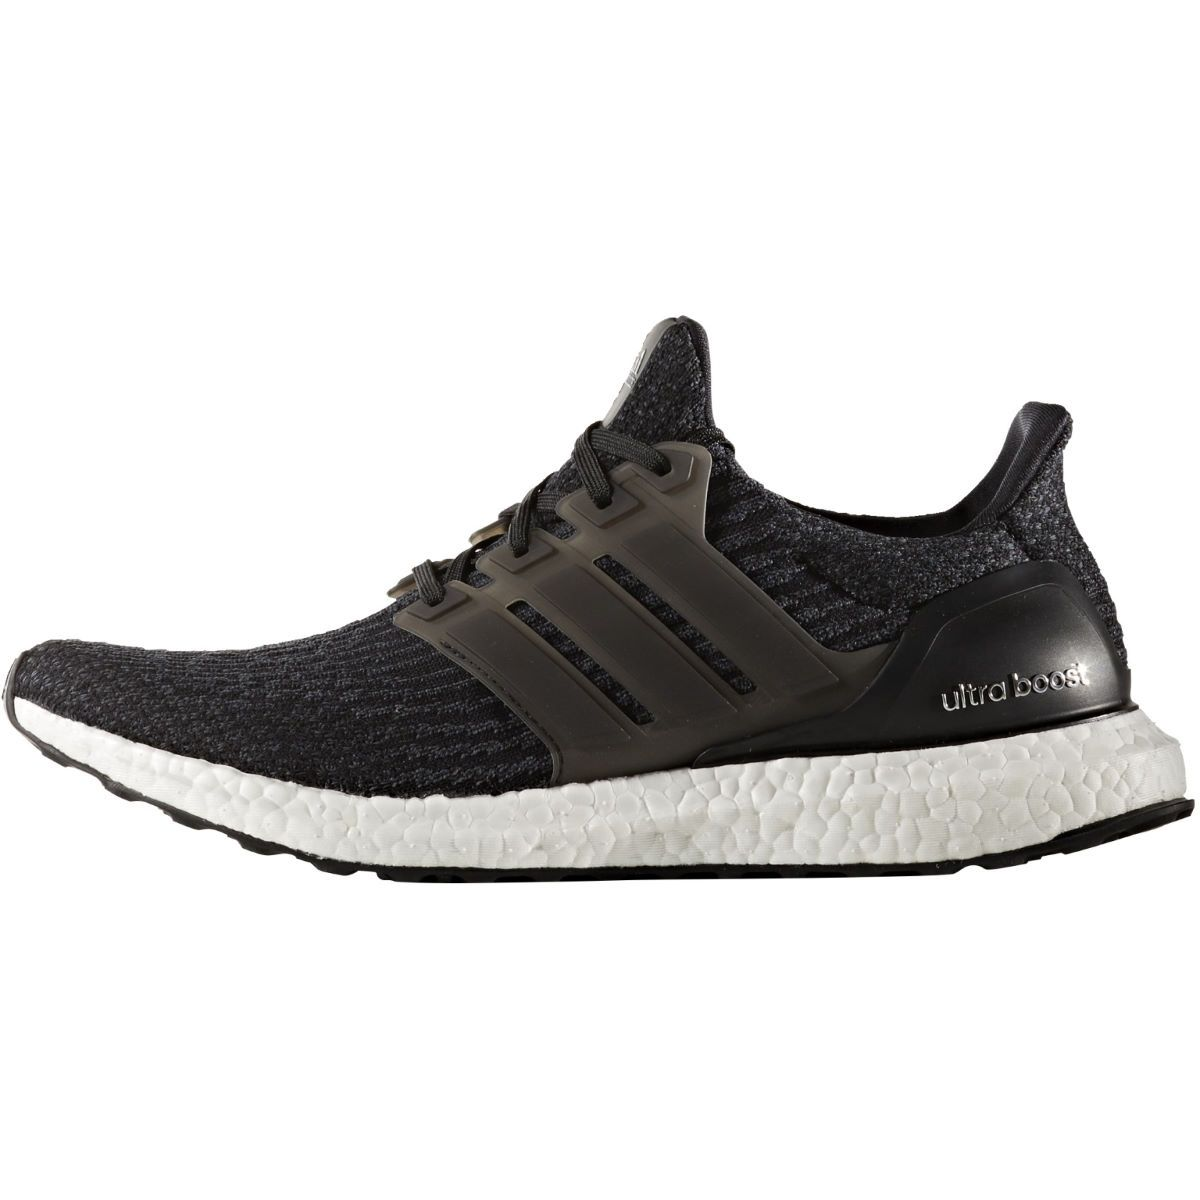 adidas Women's adidas Ultraboost Running Shoes, Size: 11.0, Gray from DICKS Sporting Goods | ShapeShop